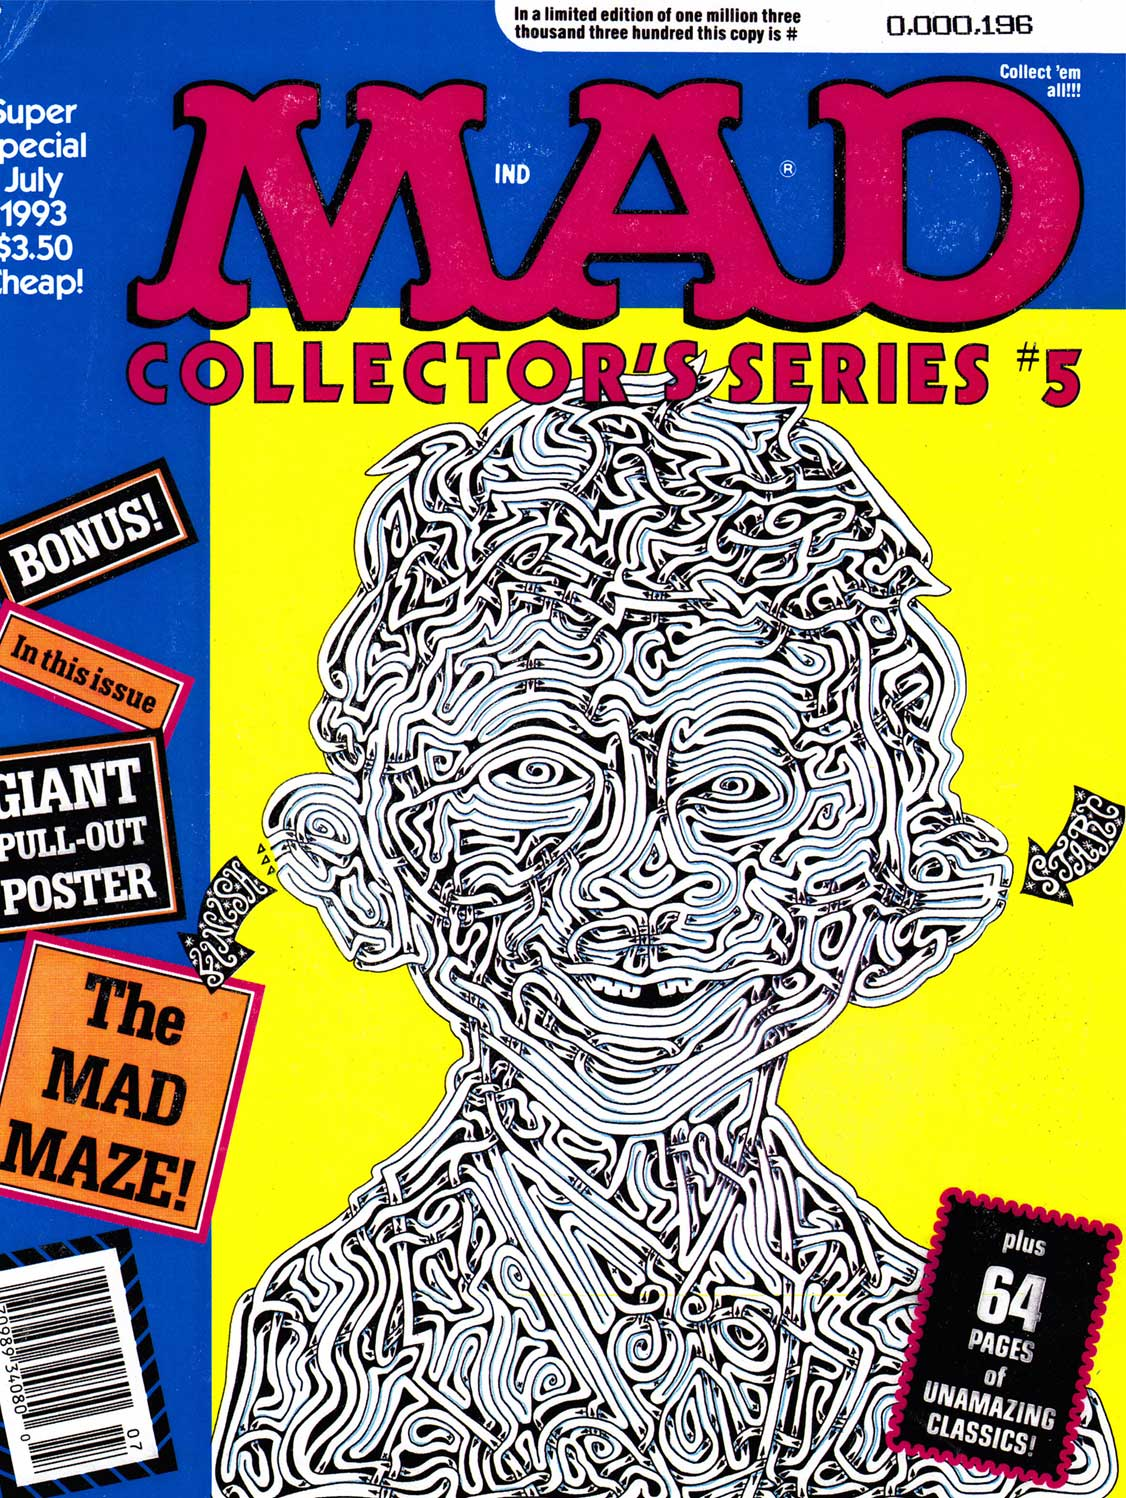 David Russo / Alfred E. Neuman / MAD Collector's Edition